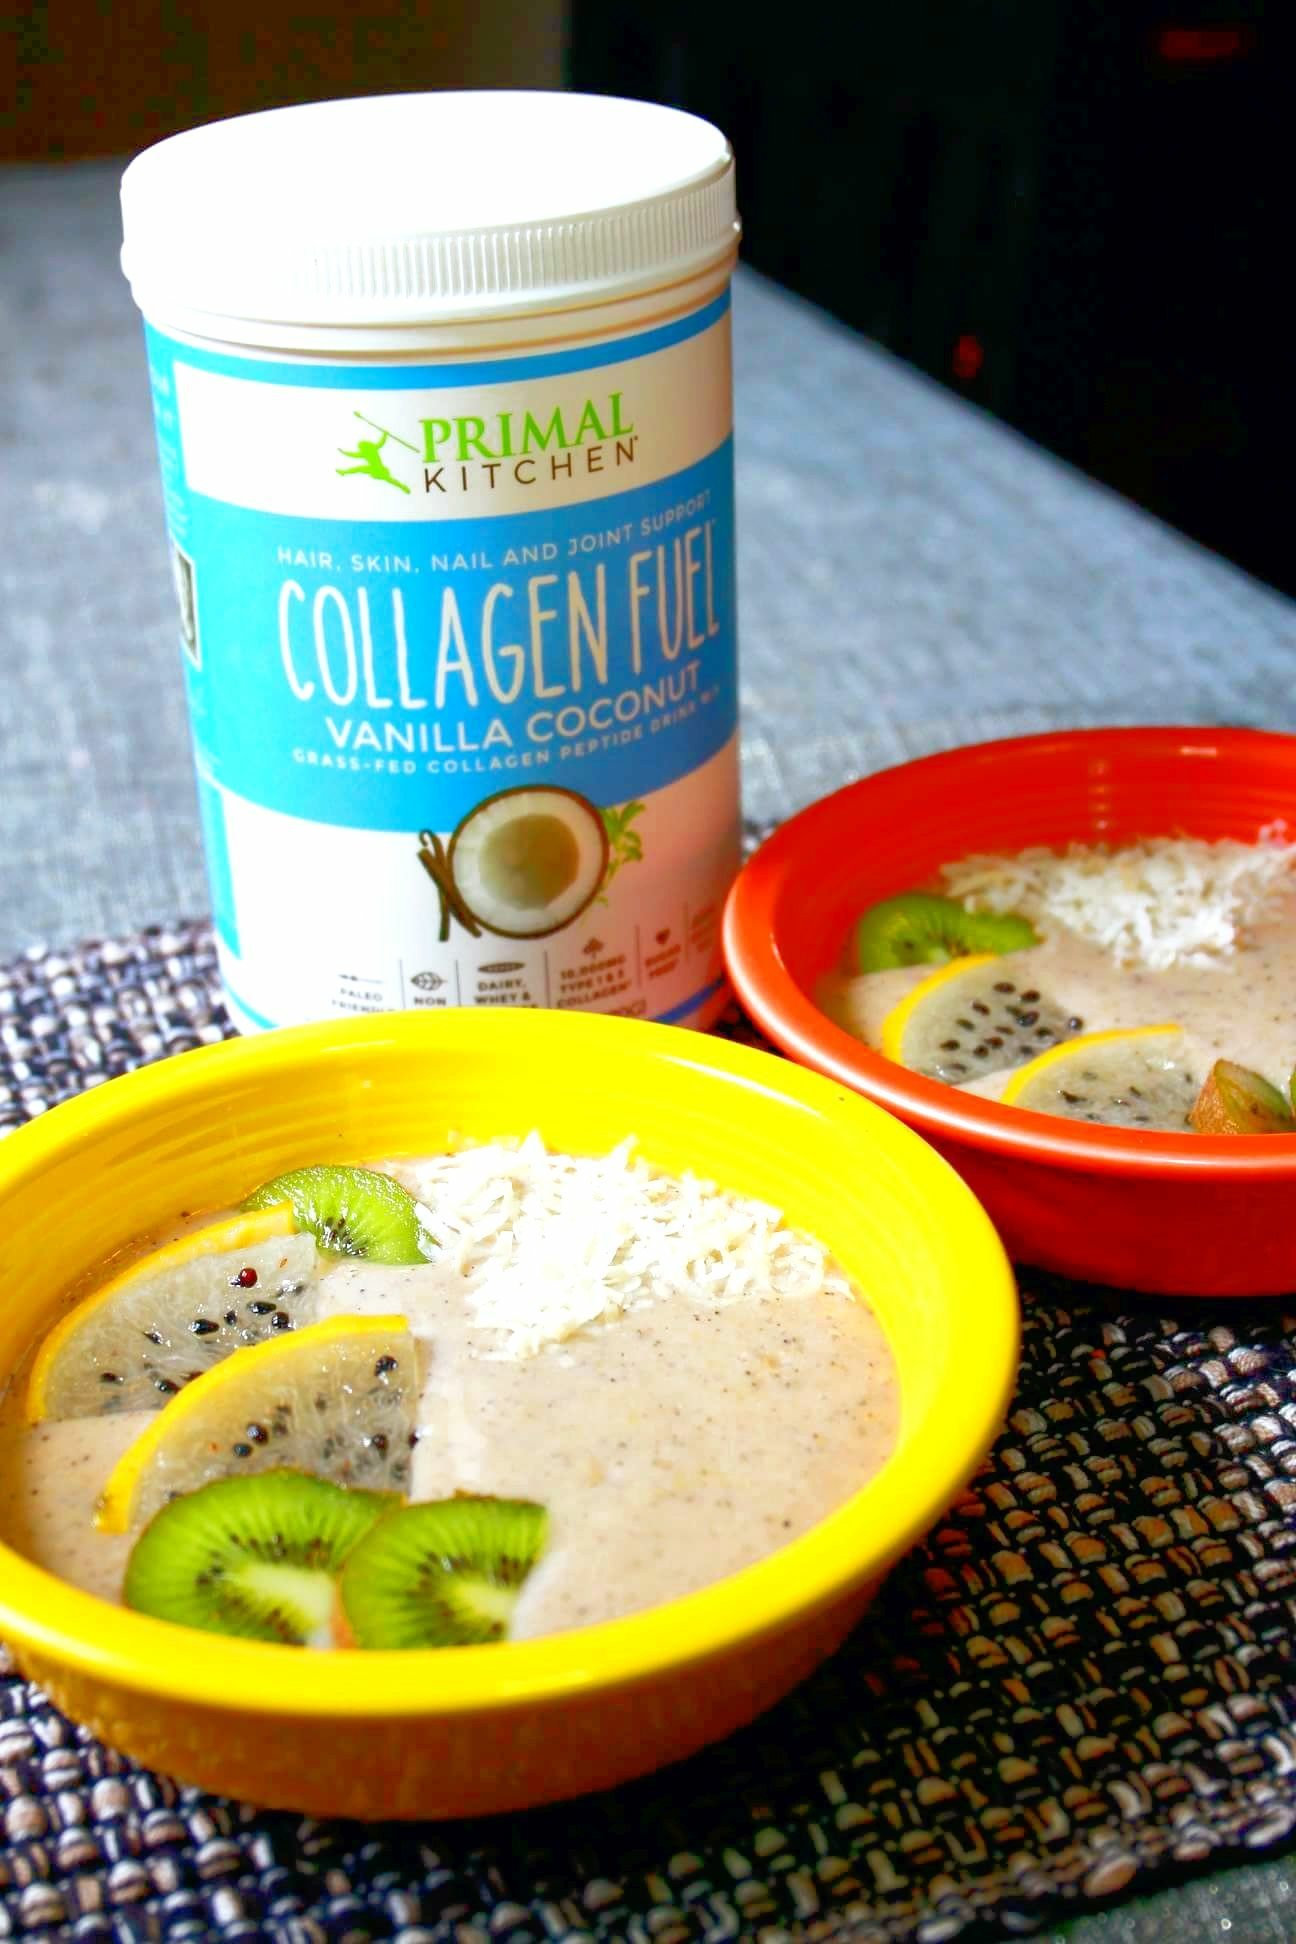 Primal Kitchen Collagen Fuel Smoothie Recipe Tried It Tuesday Give It A Whirl Girl